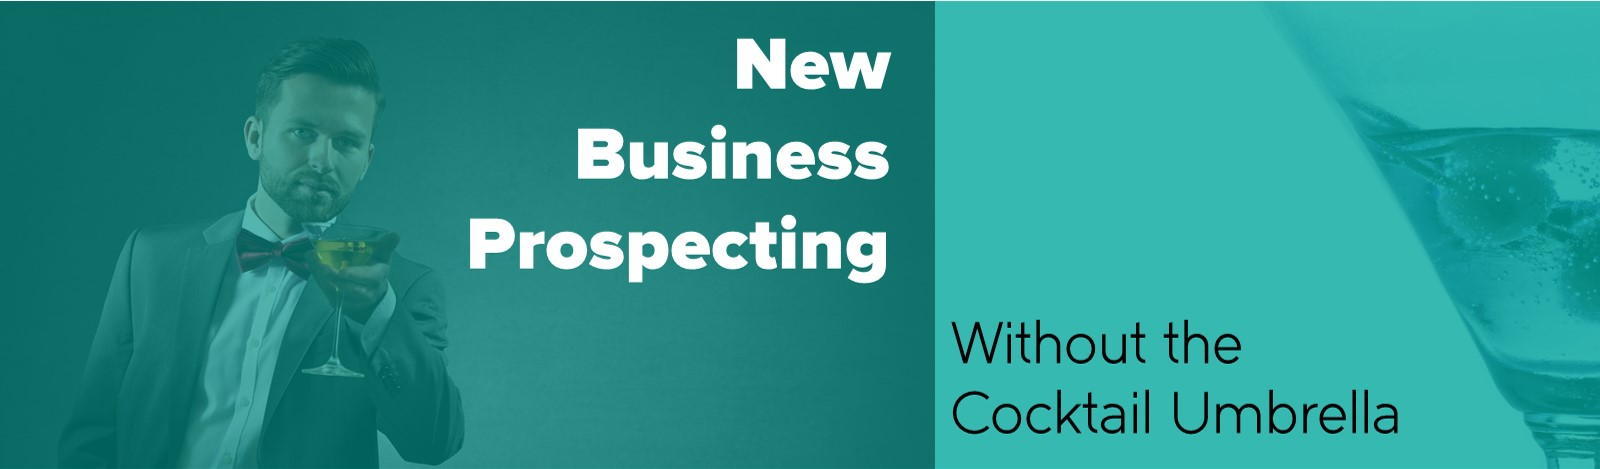 New Business Prospecting Without the Cocktail Umbrella